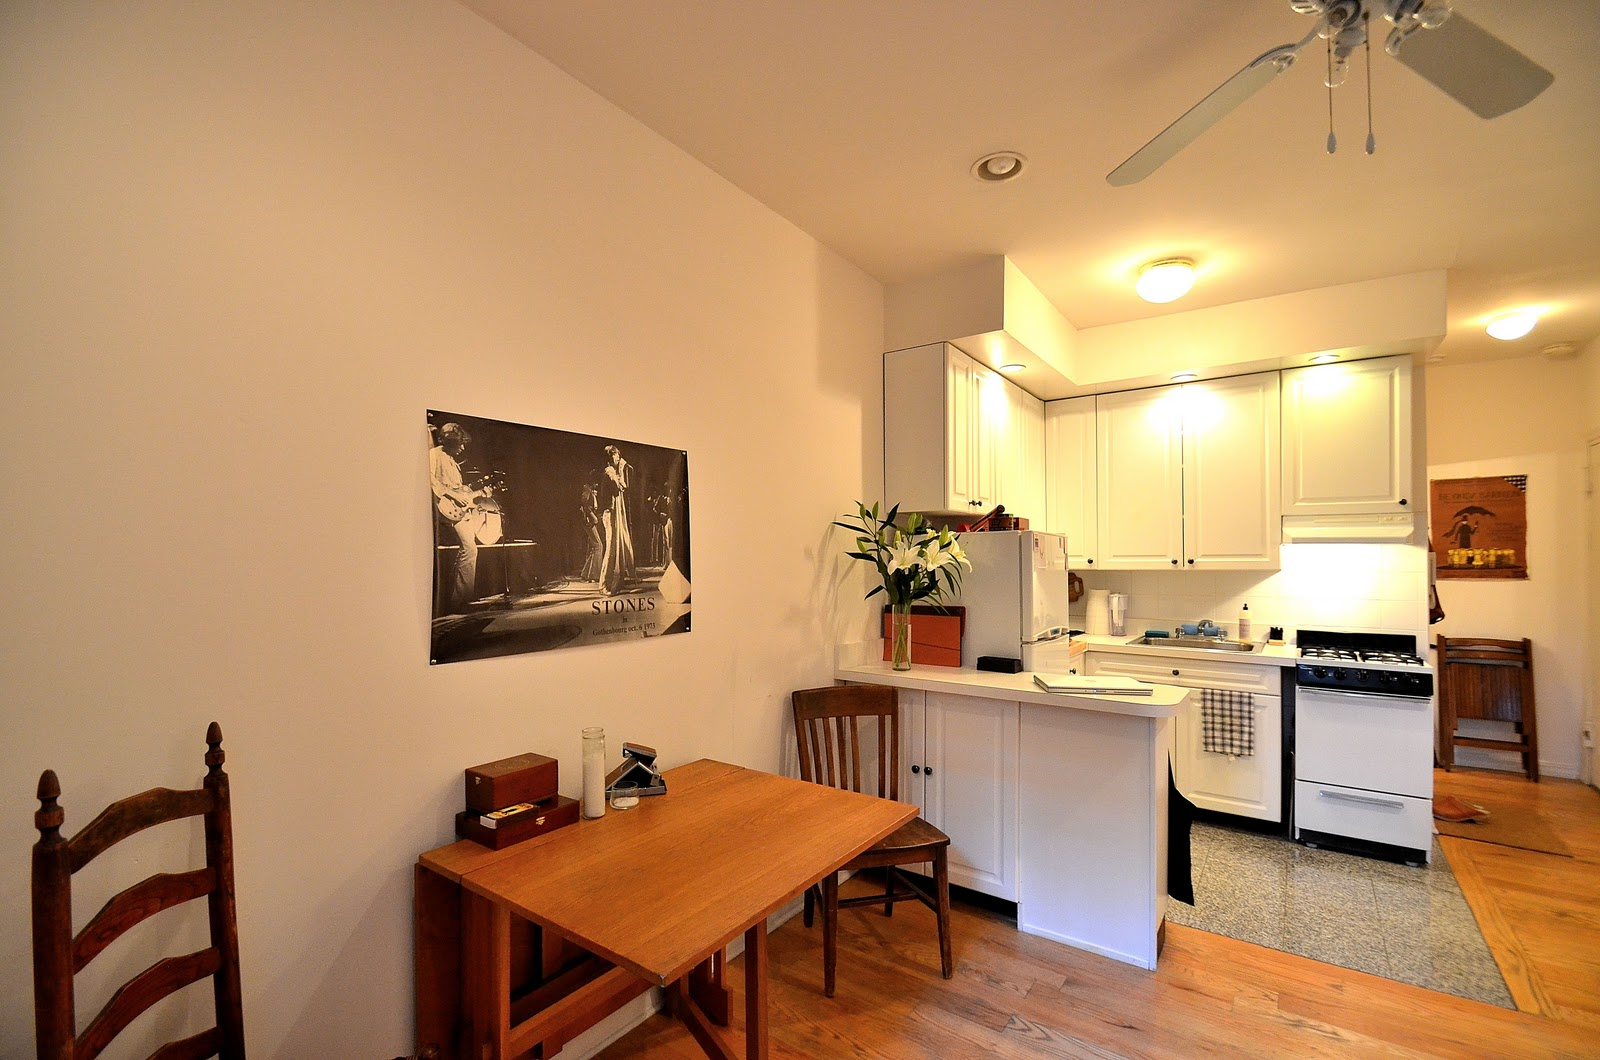 City living apt blog welcome nyc east village studio for for New york apartments for rent